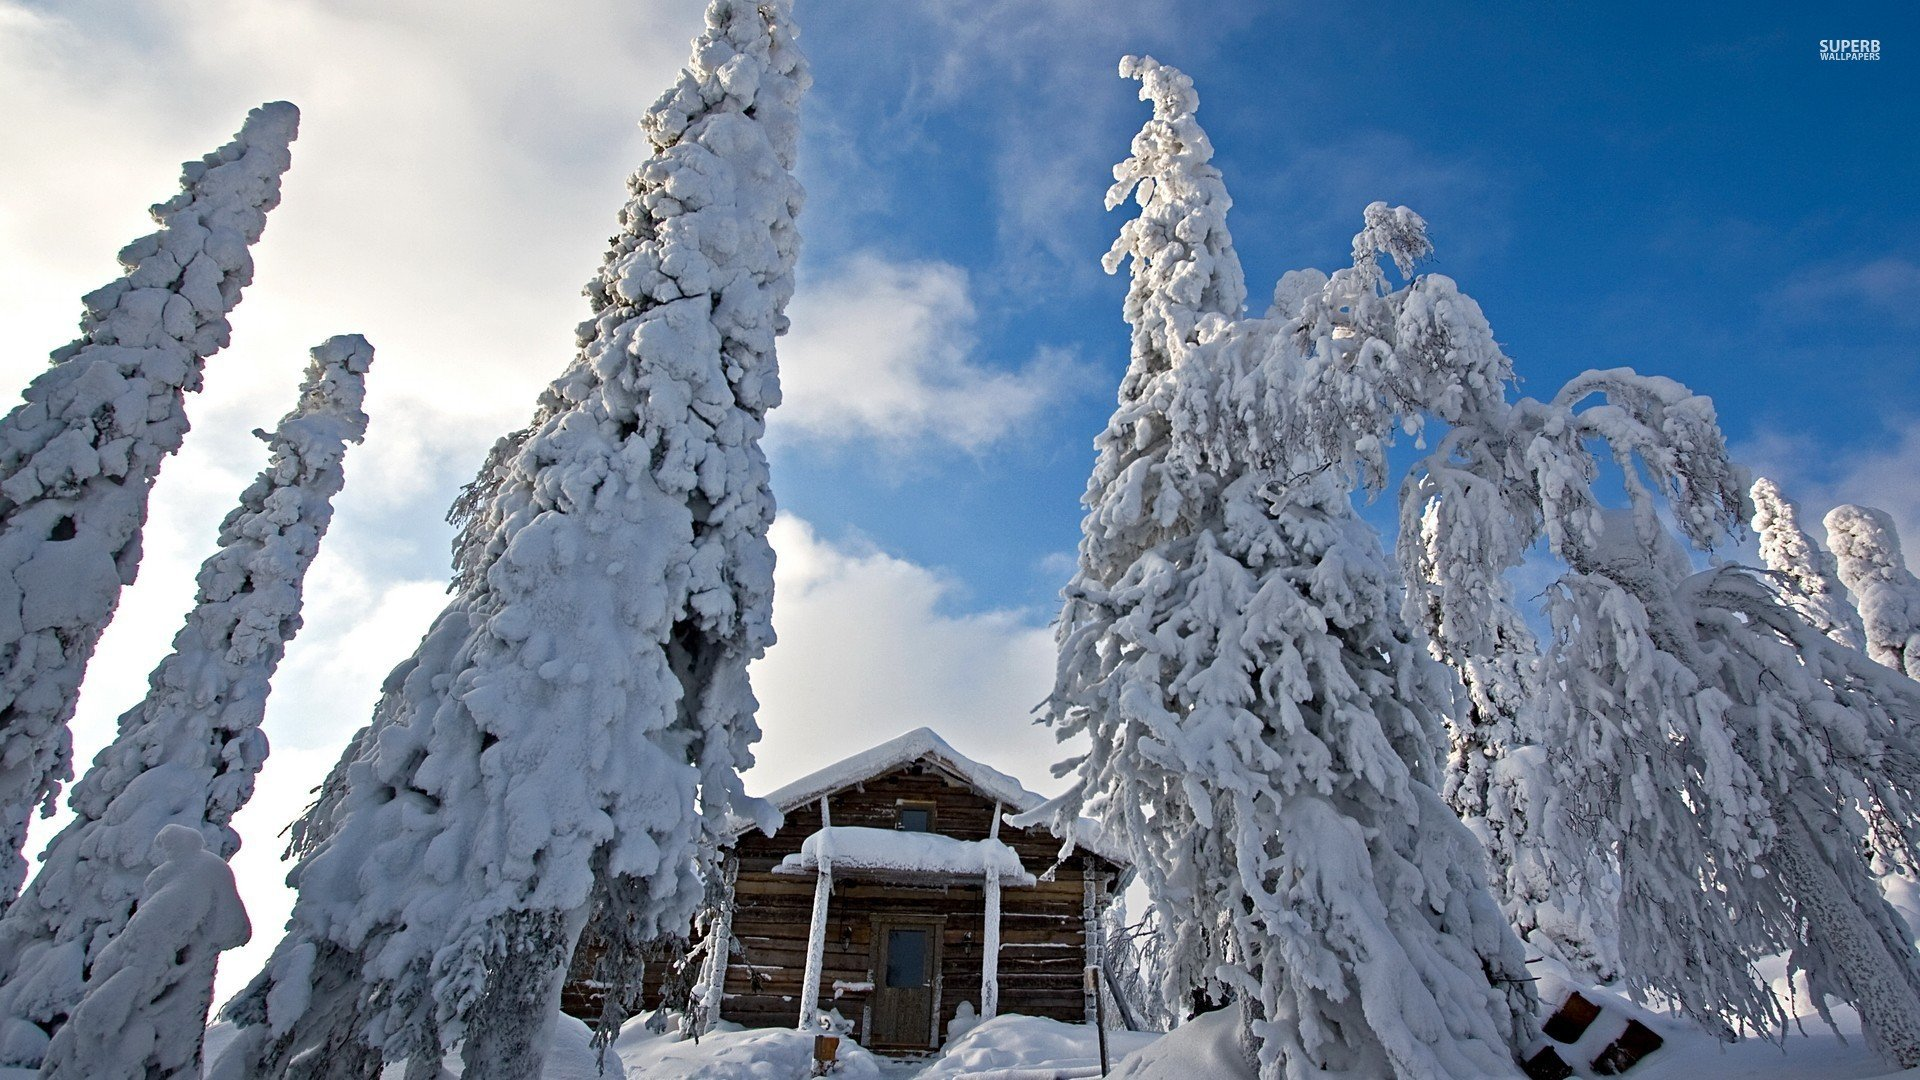 Download Snowy Trees Guarding The Snowy Wooden Hut